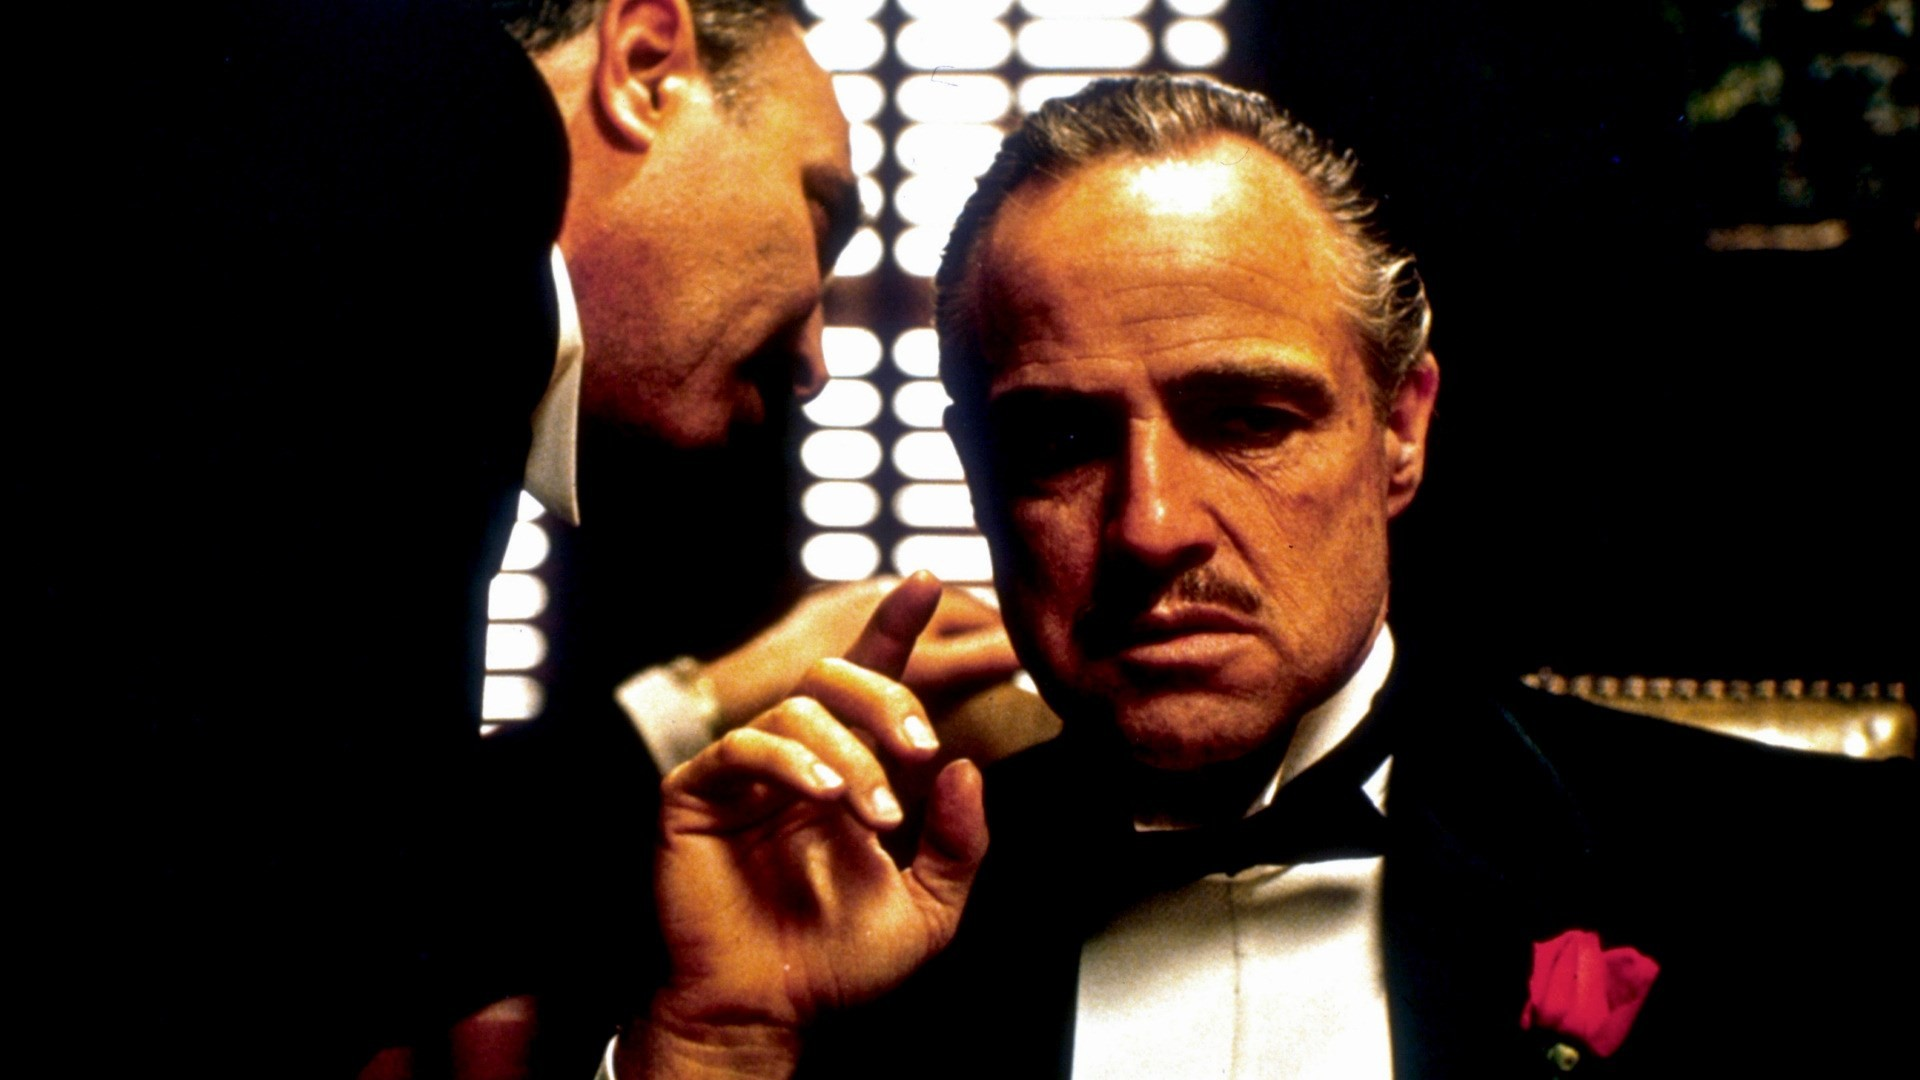 Godfather Hd Wallpaper The Godfather Wallpapers 62 Images